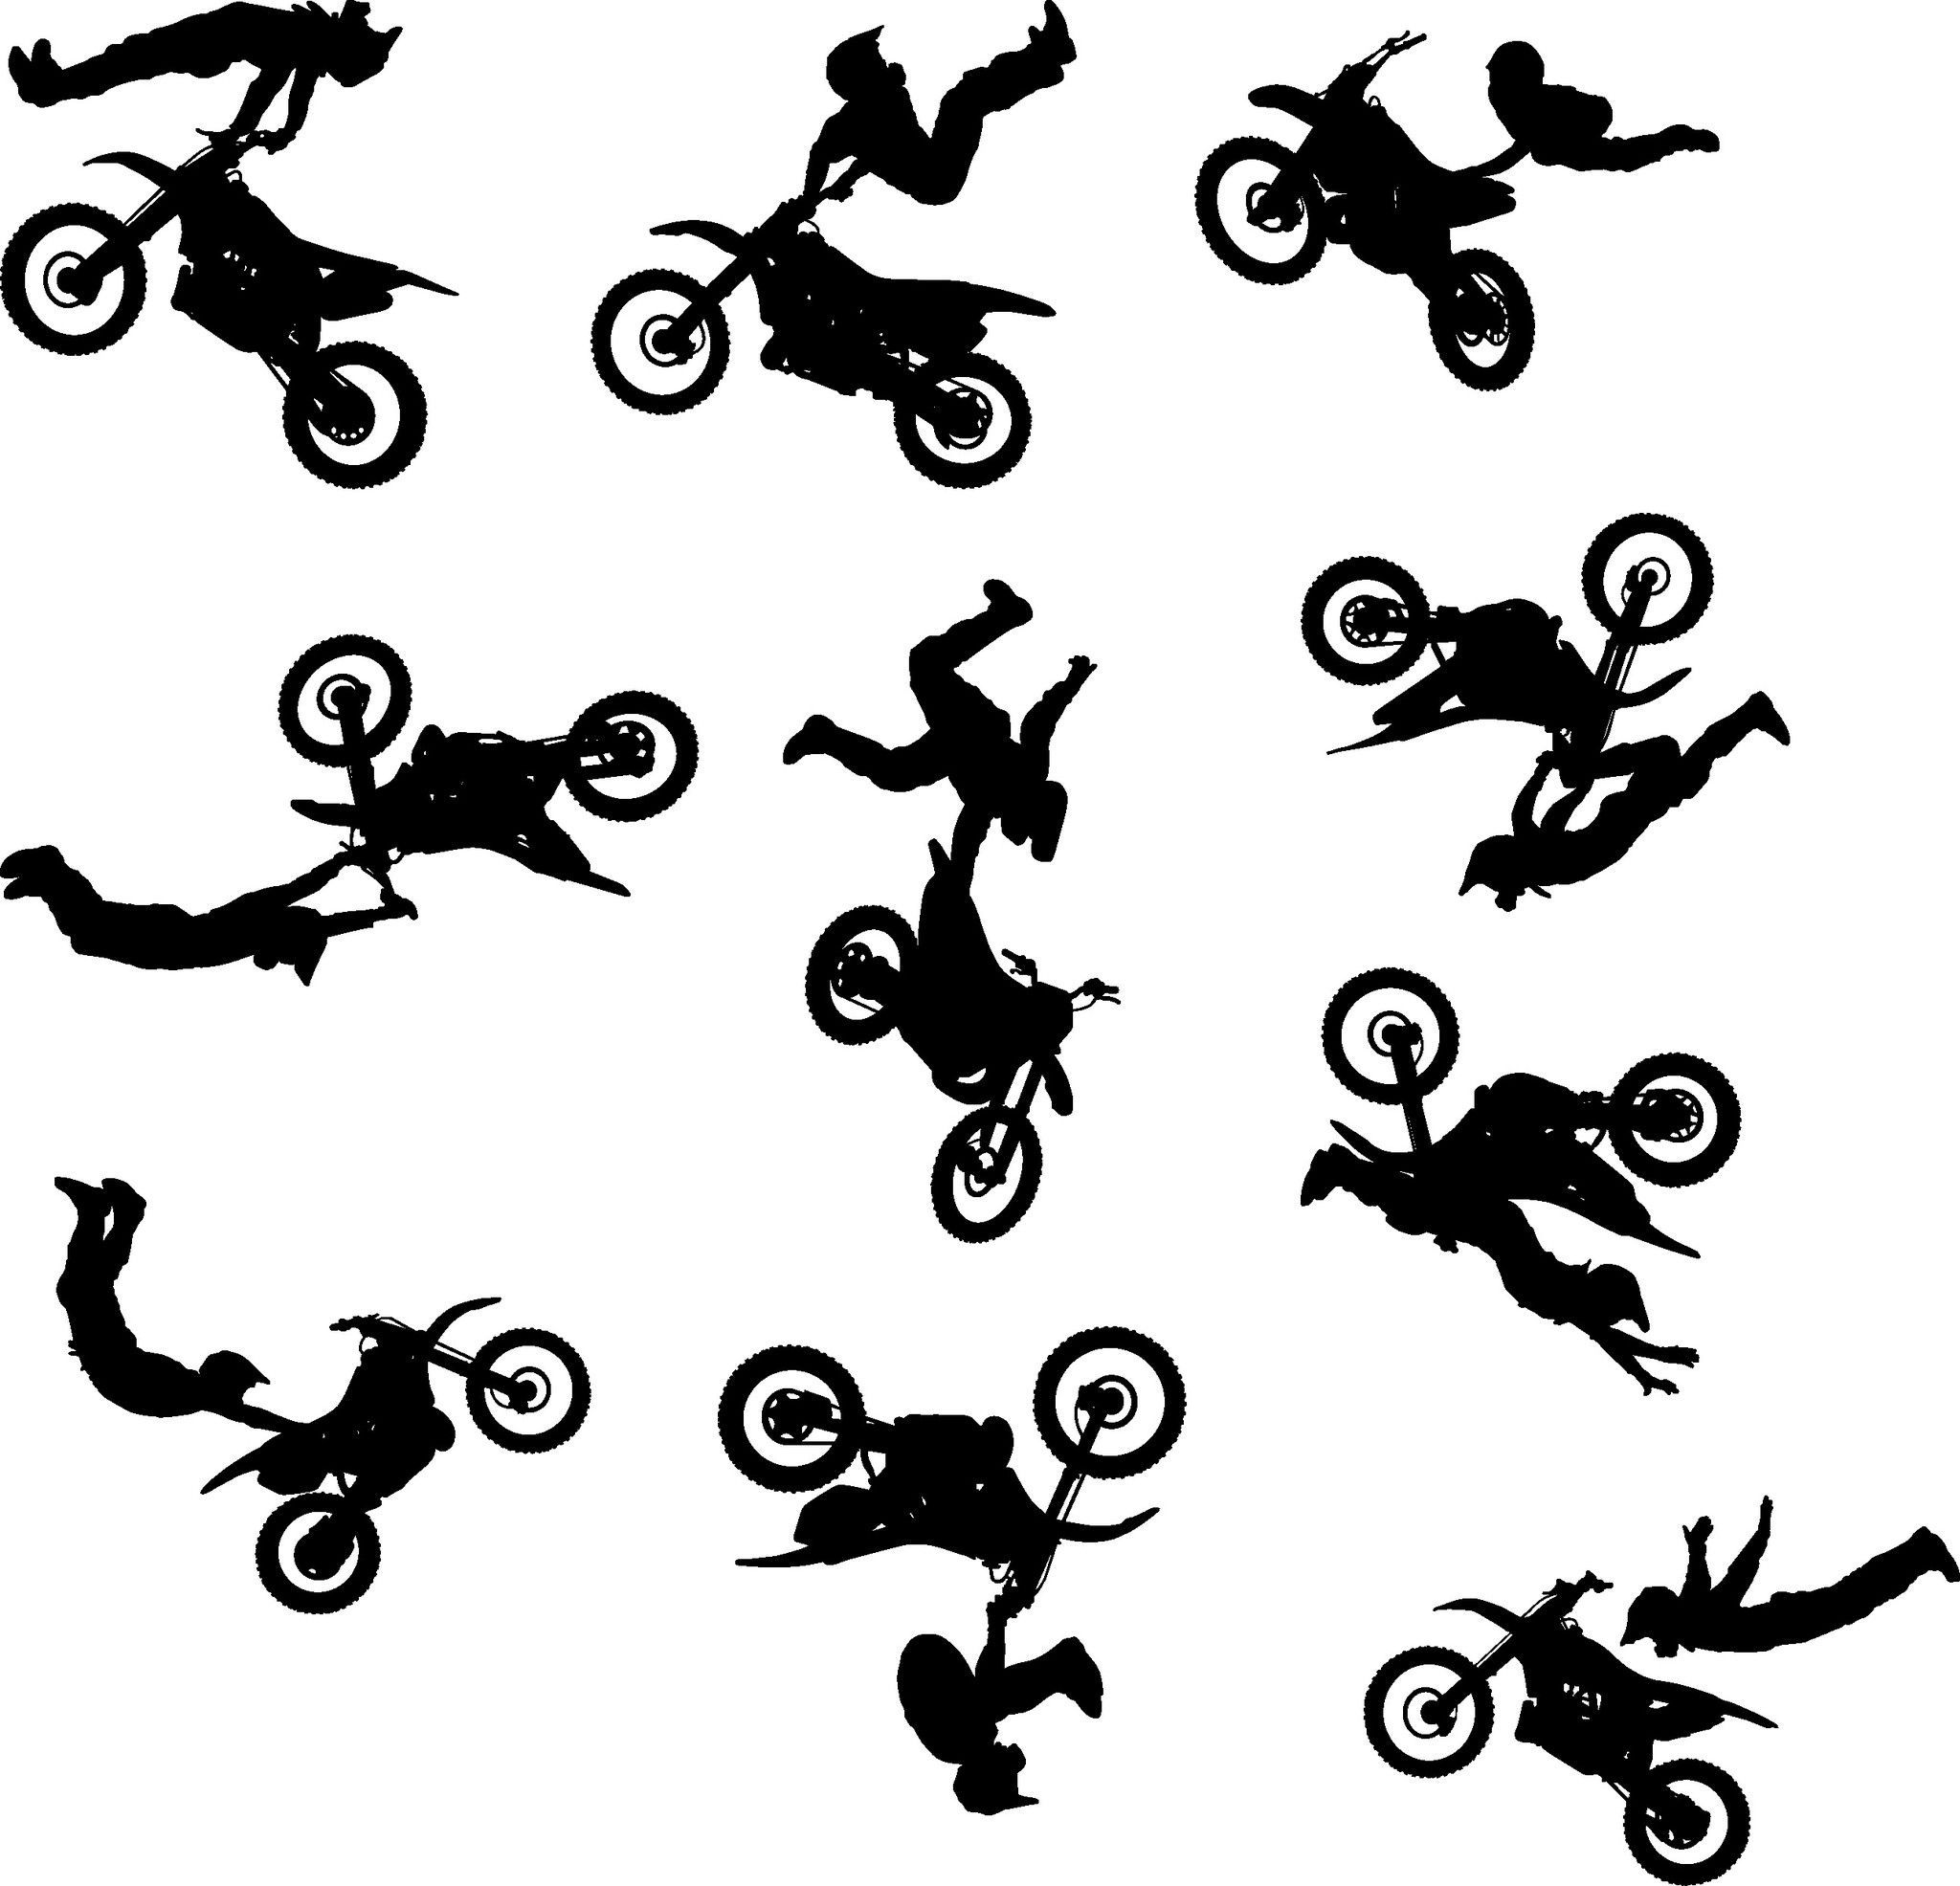 Motocross Dirt Bike Wall Decal Sticker Set of Ten | Dirt ...